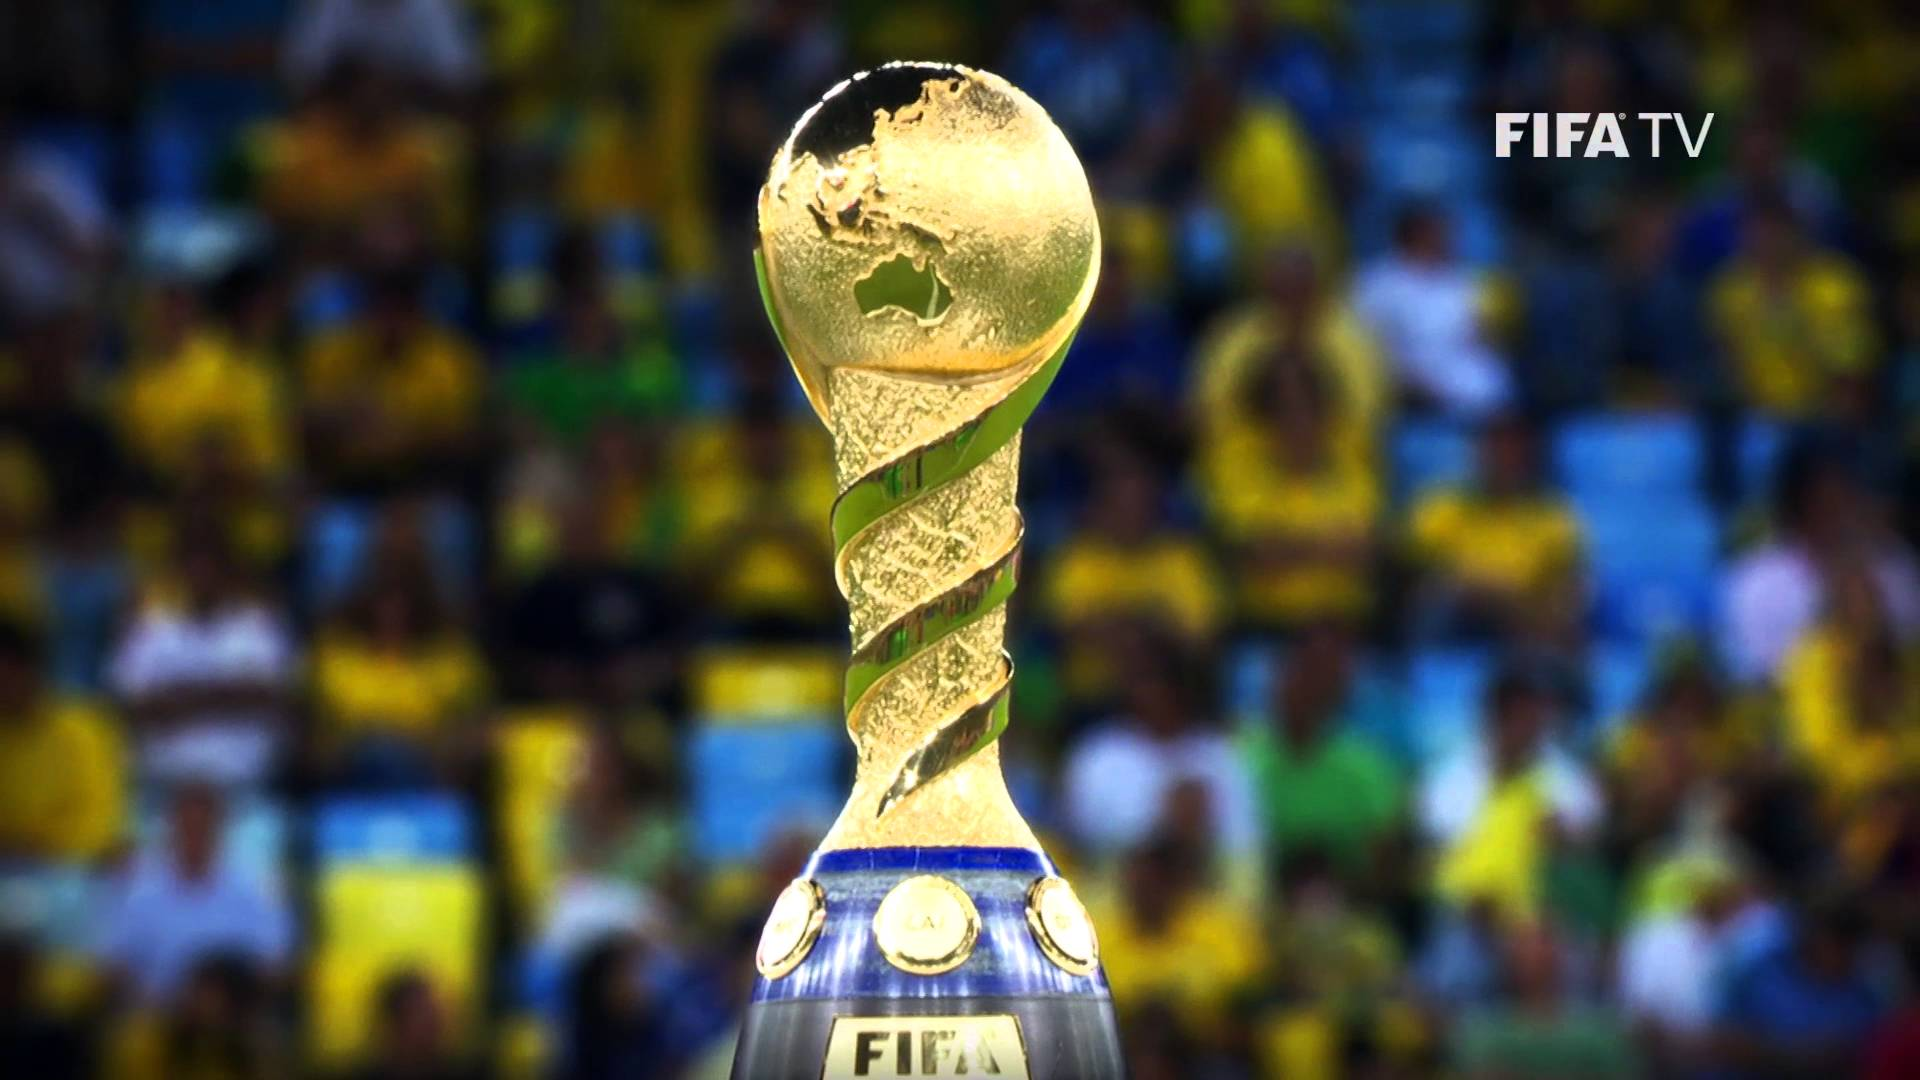 Germania-Cile streaming - diretta tv, dove vederla (Confederations Cup)